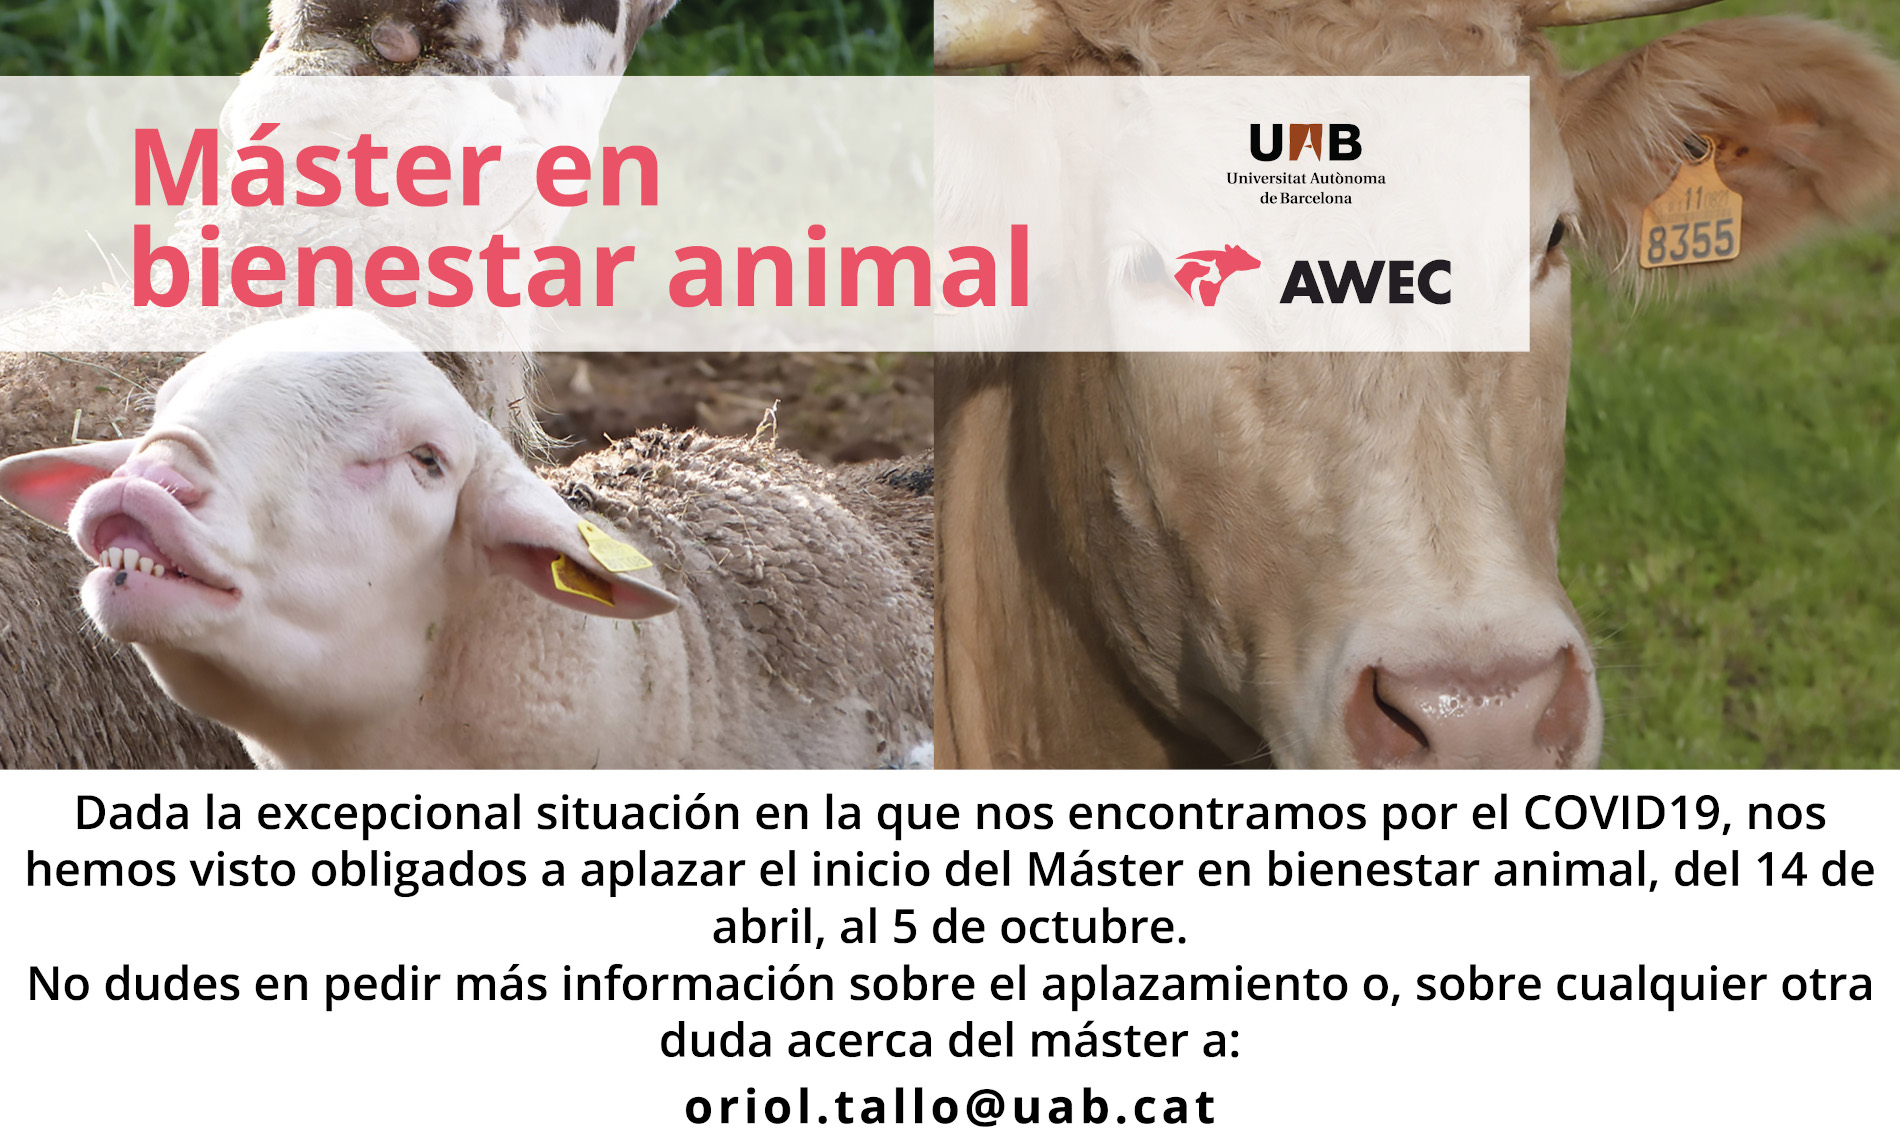 MÁSTER EN BIENESTAR ANIMAL